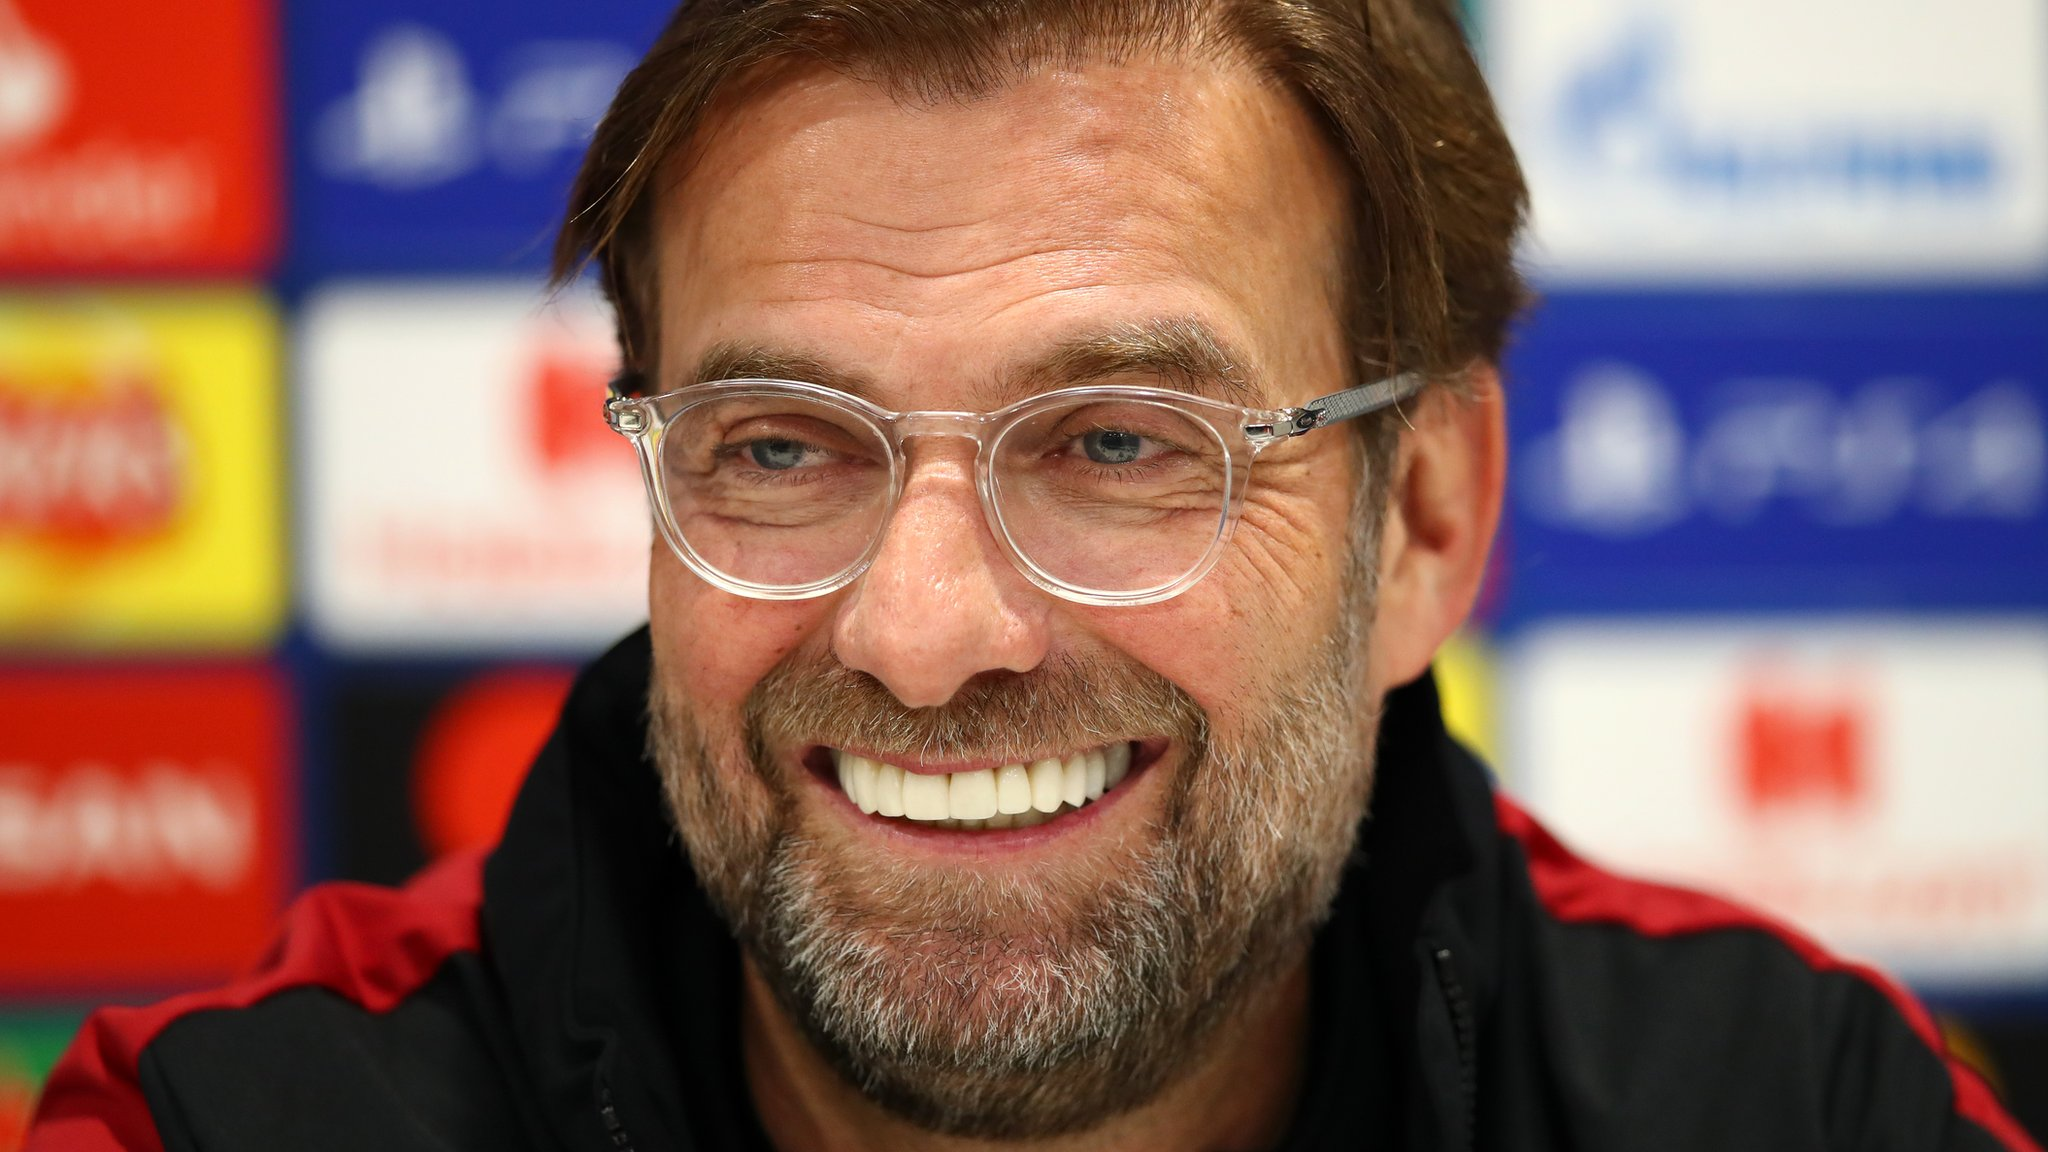 Jurgen Klopp: Crowd can take Liverpool 'from 100% to 140%'